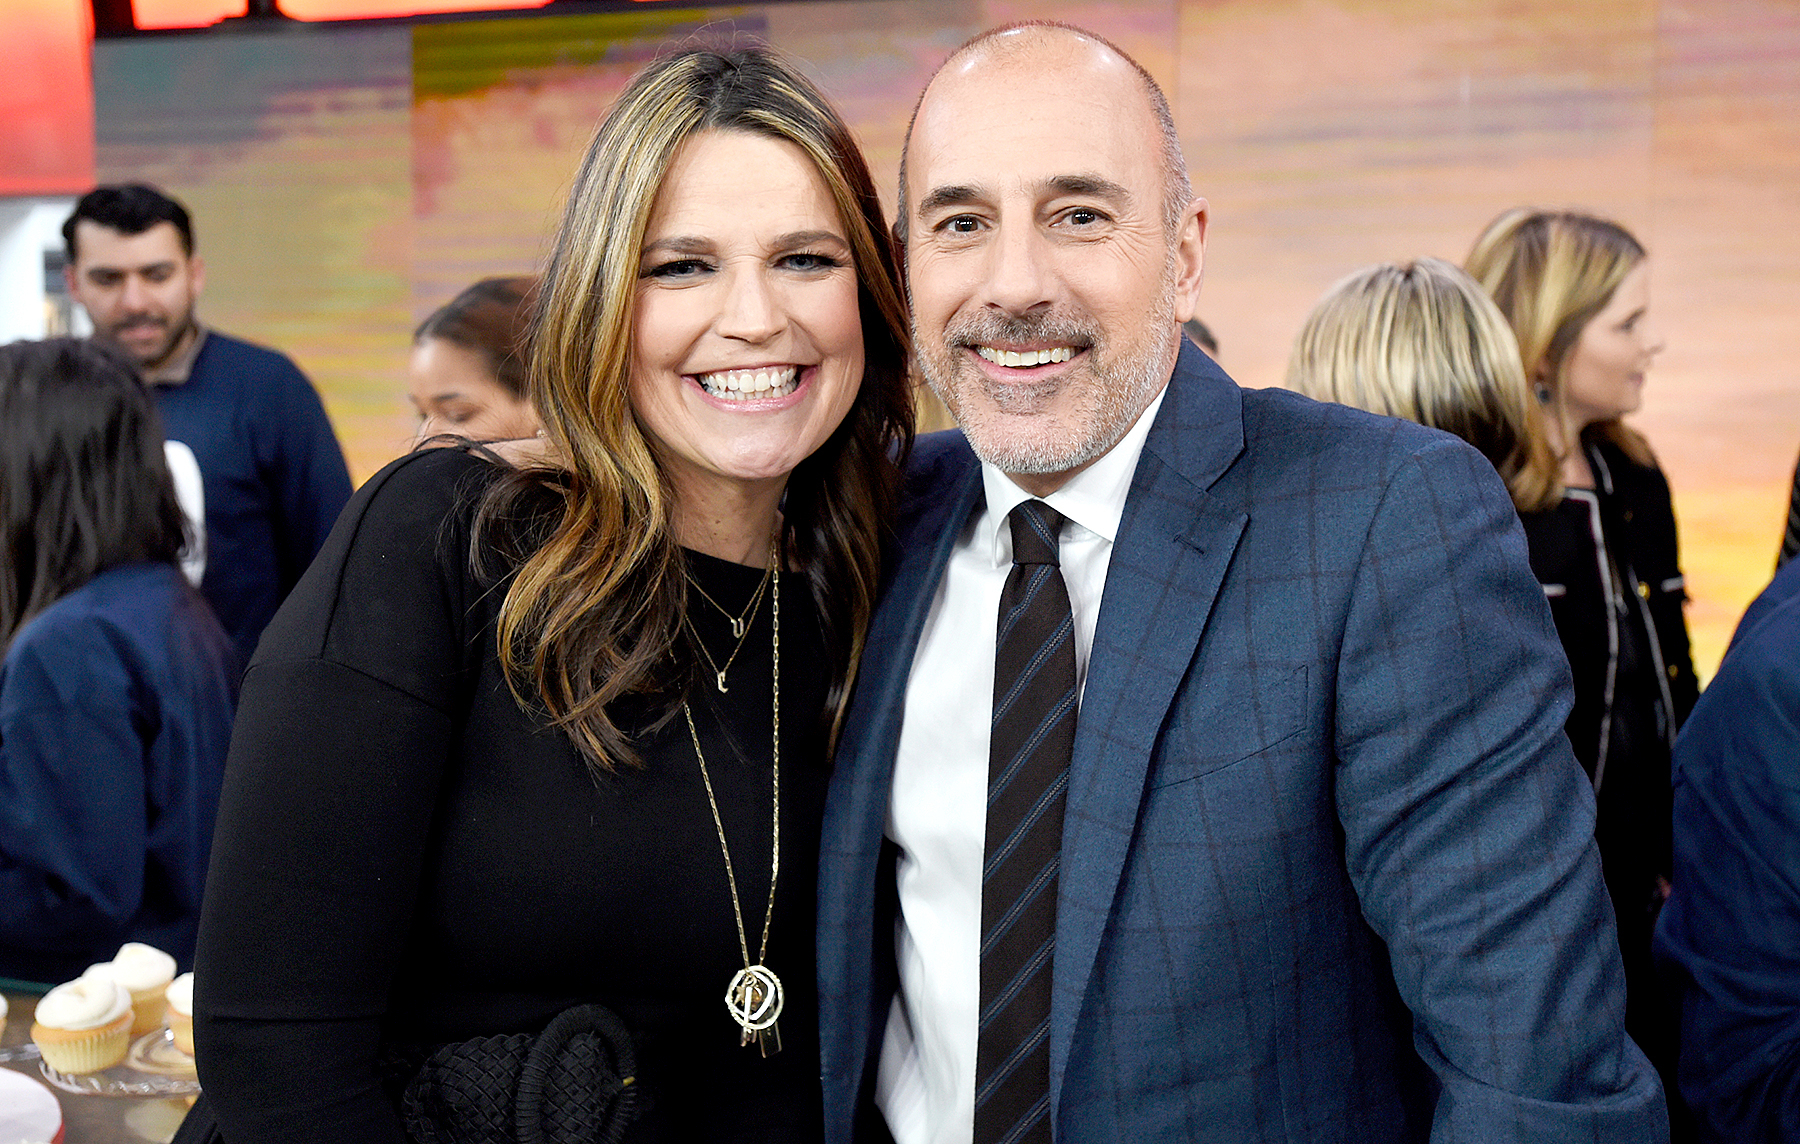 Matt Lauer Continues Wearing Wedding Ring Despite Rumors